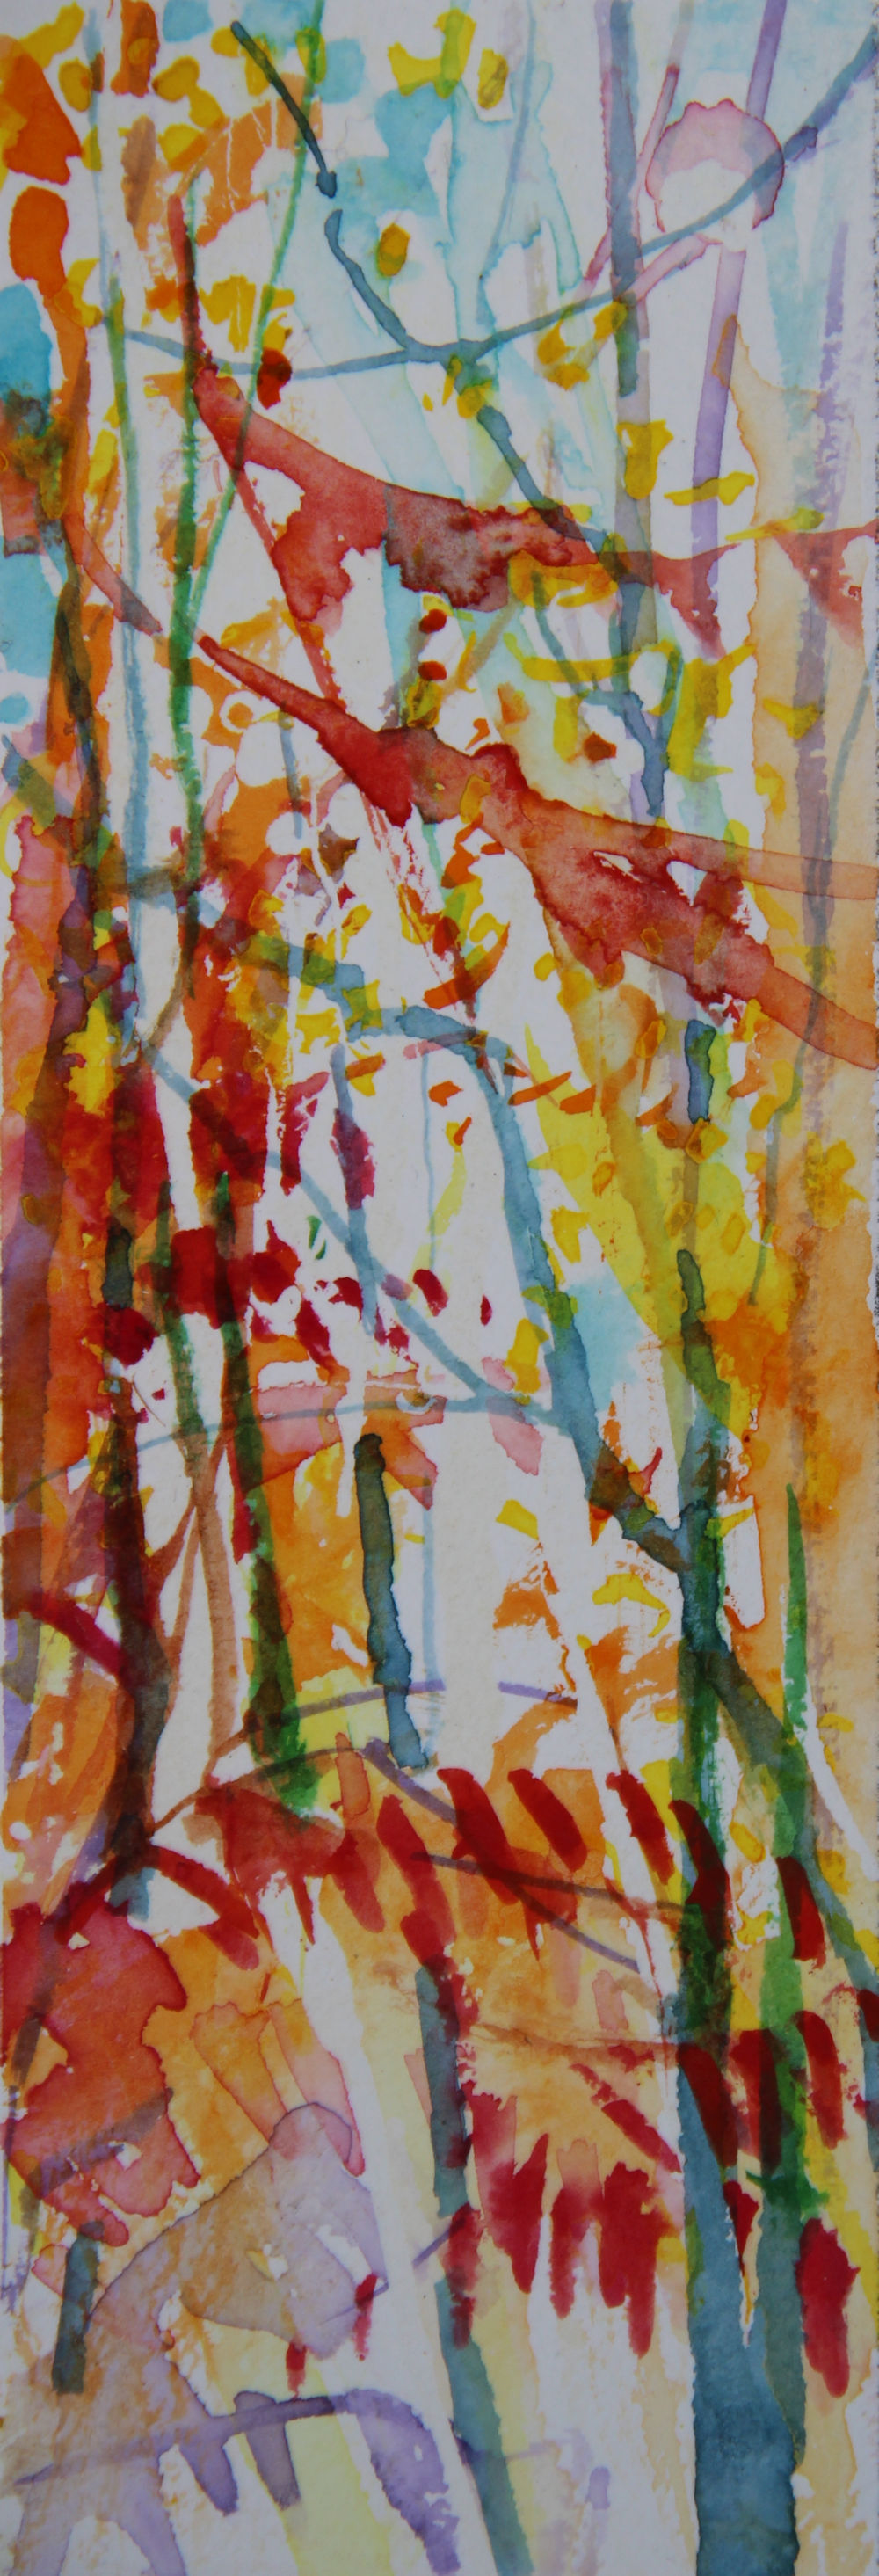 Autumn Forest Scene 13, about 6H x 2W inches watercolors on 140 lb cold pressed